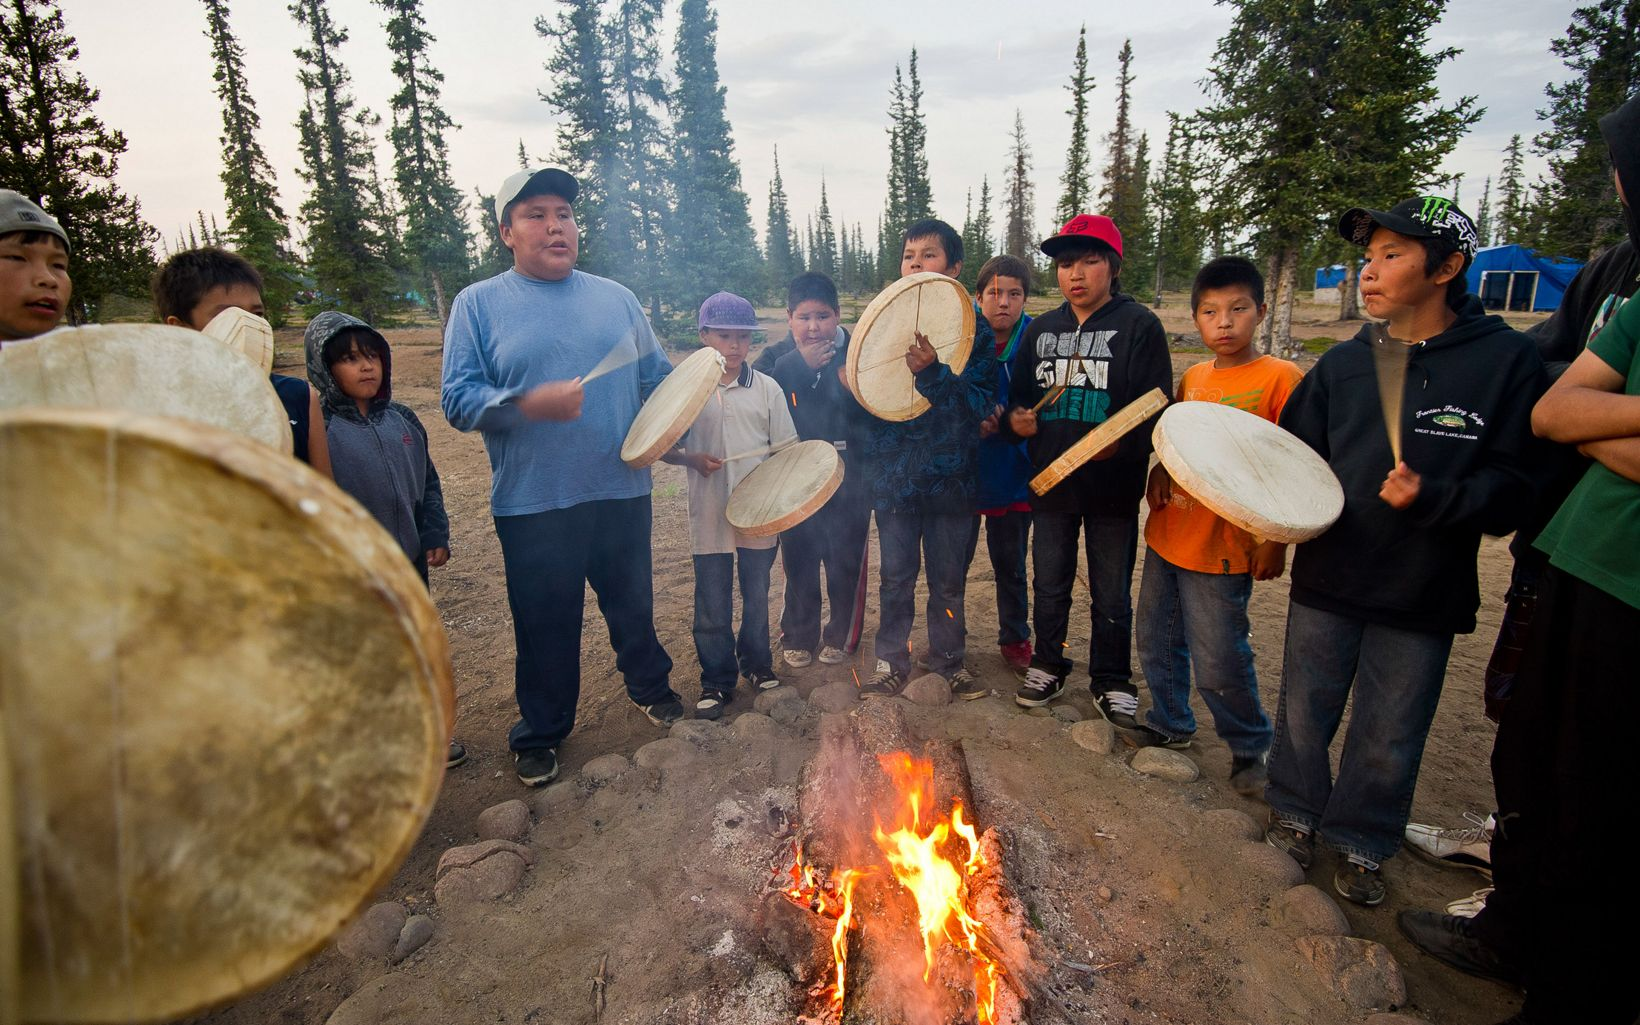 Dene First Nation youth beat drums around a fire during a spiritual gathering after returning from a canoe trip on the Upper Thelon River.